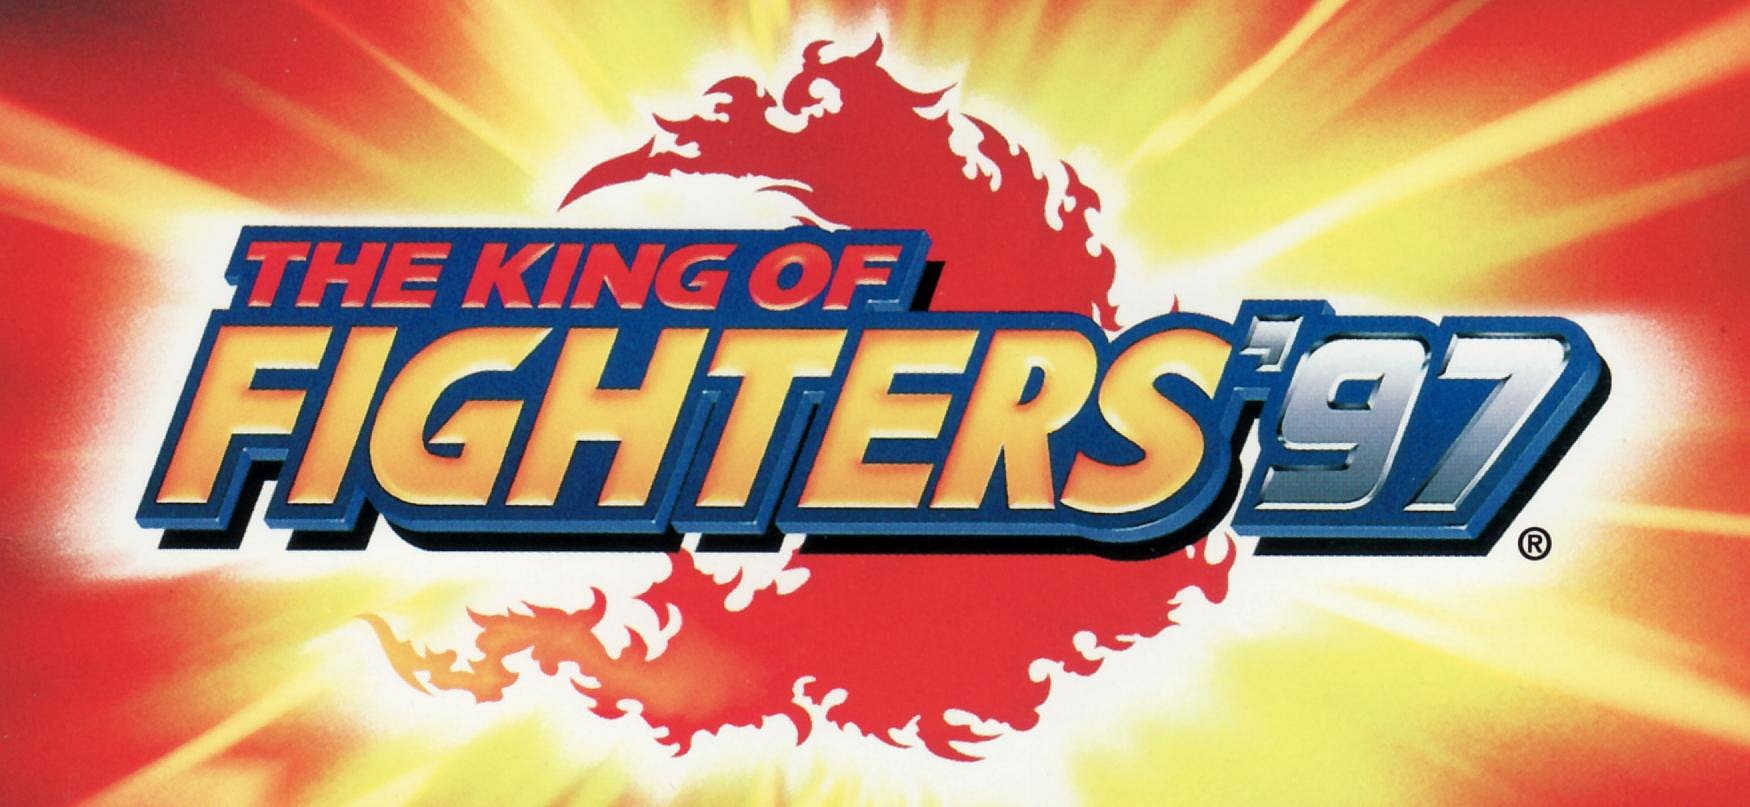 THE KING OF FIGHTERS 97. Pronto lo tendremos en Wii. 7fe4462dde31c0254a2db9a726ce4b29o